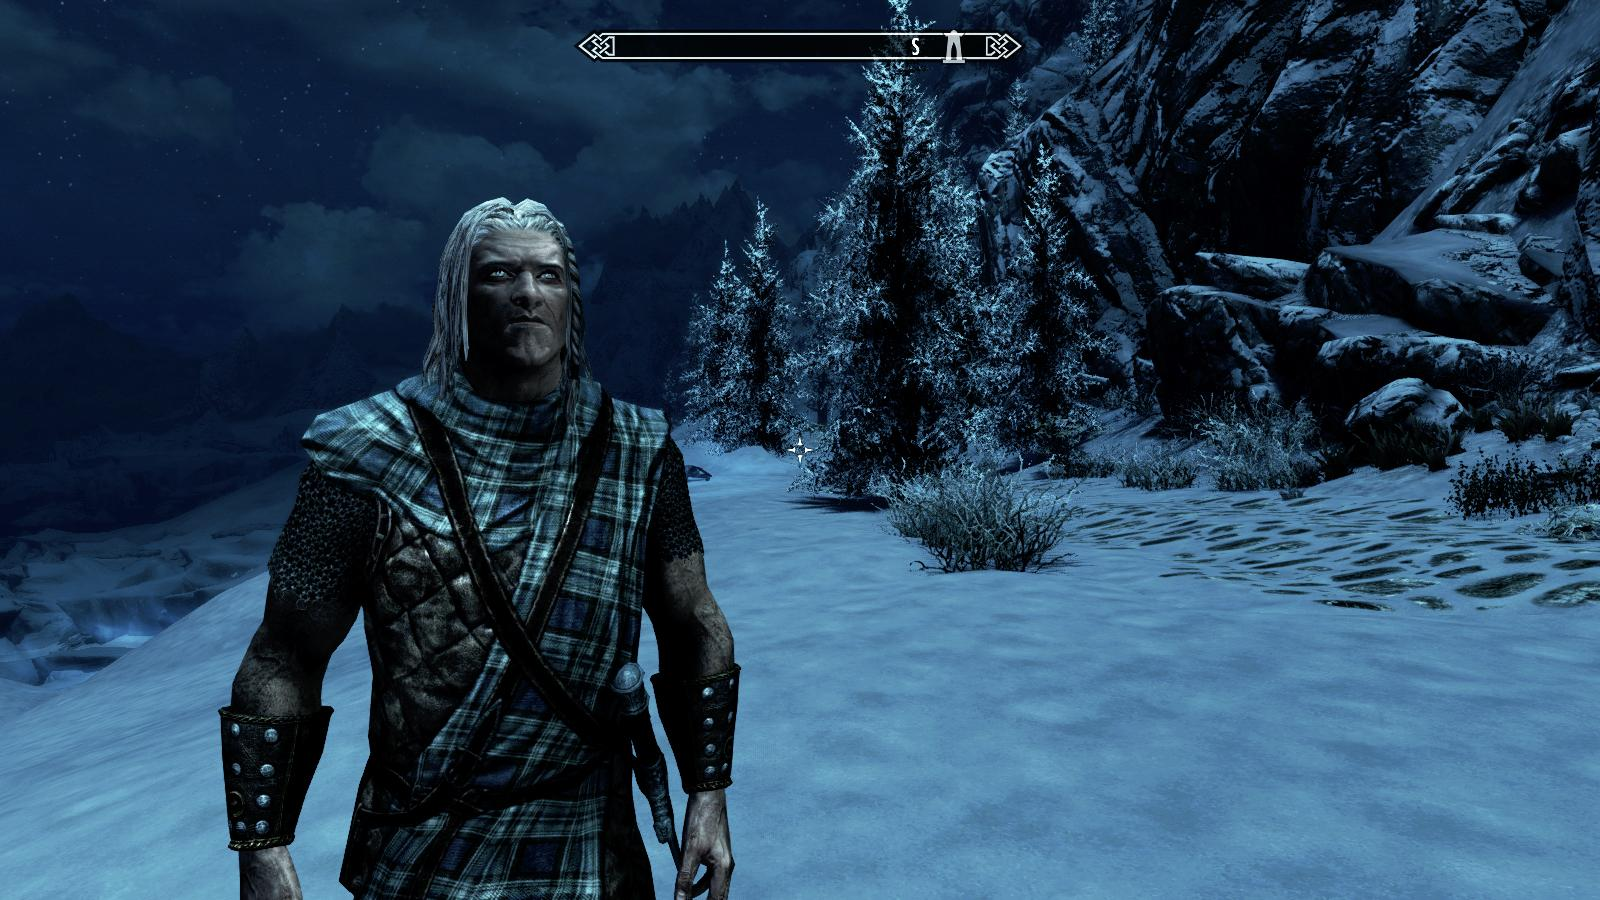 Lothar The Pale